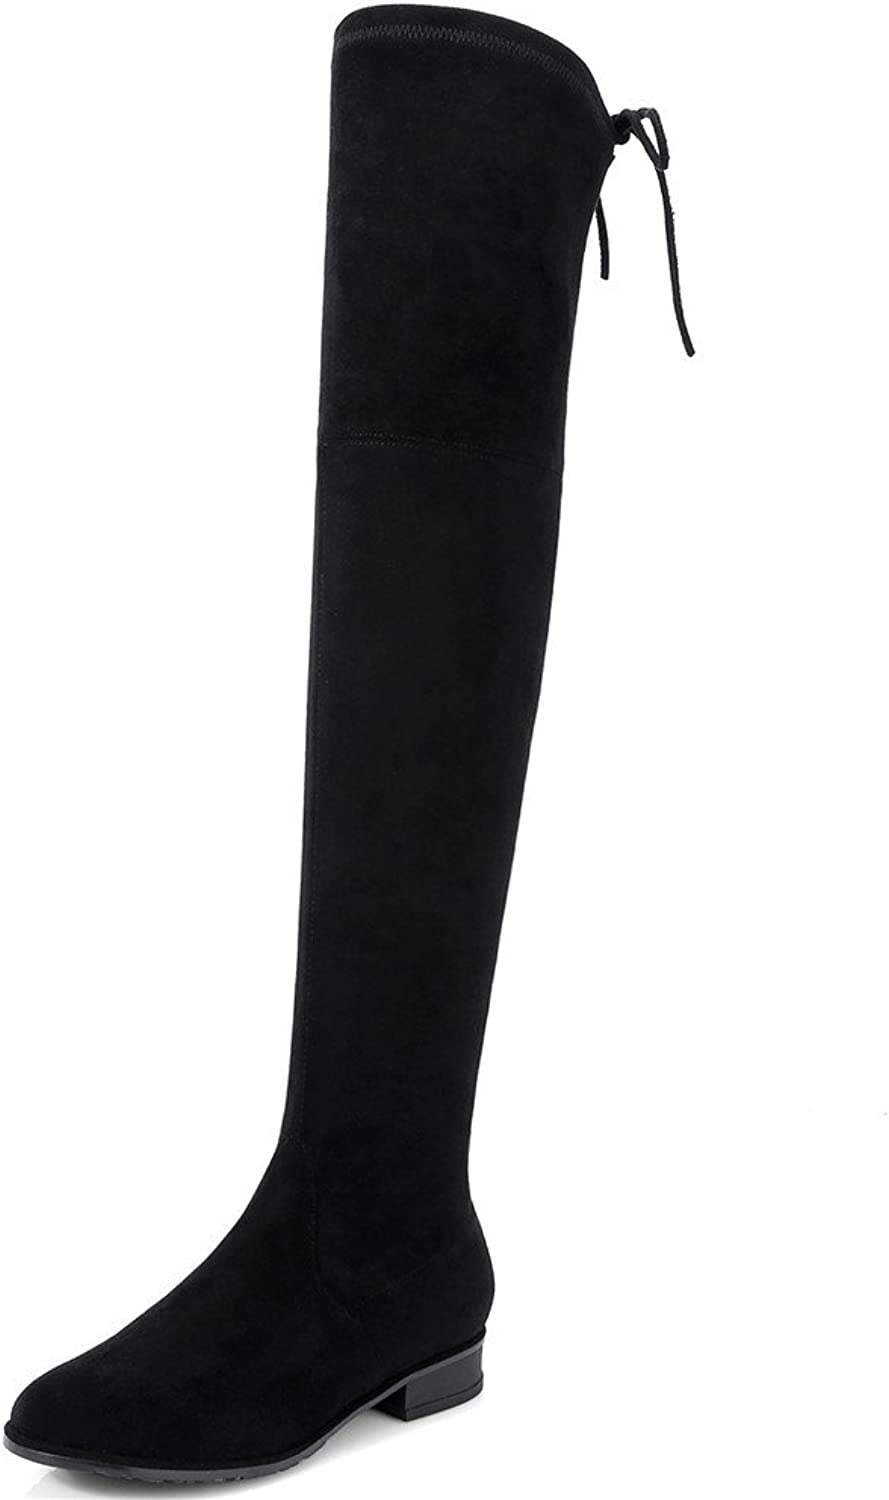 Nine Seven Suede Leather Women's Round Toe Flat Comfort Handmade Trendy Dressy Over The Knee Boots